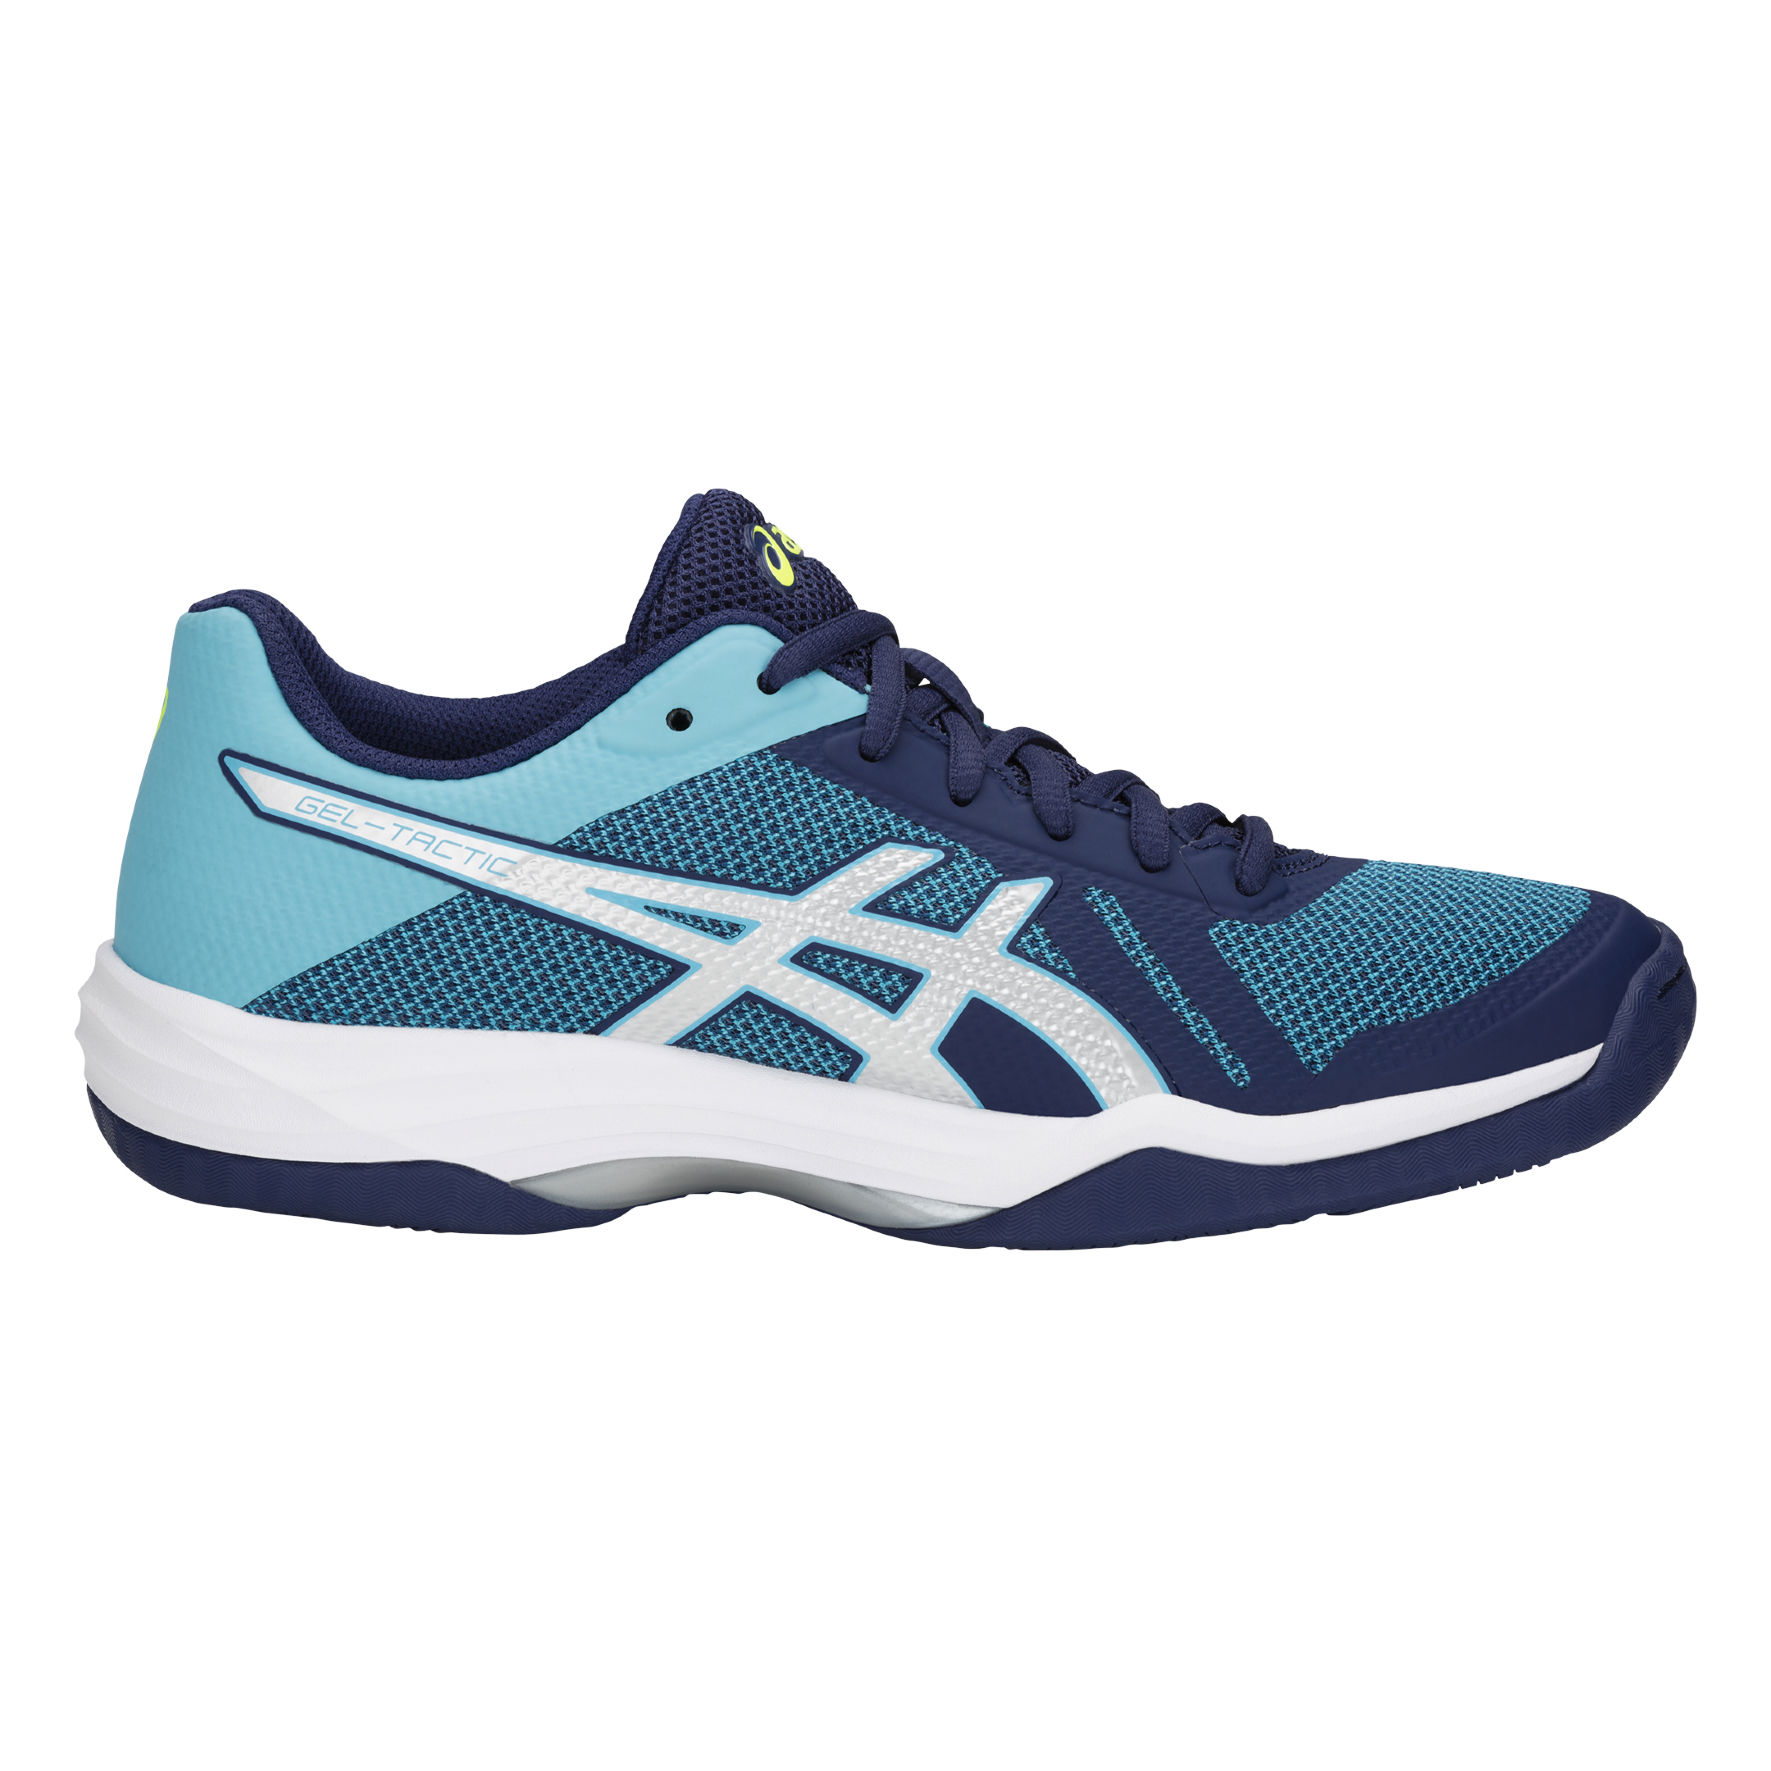 Asics Lady Gel Tactic (Blau)